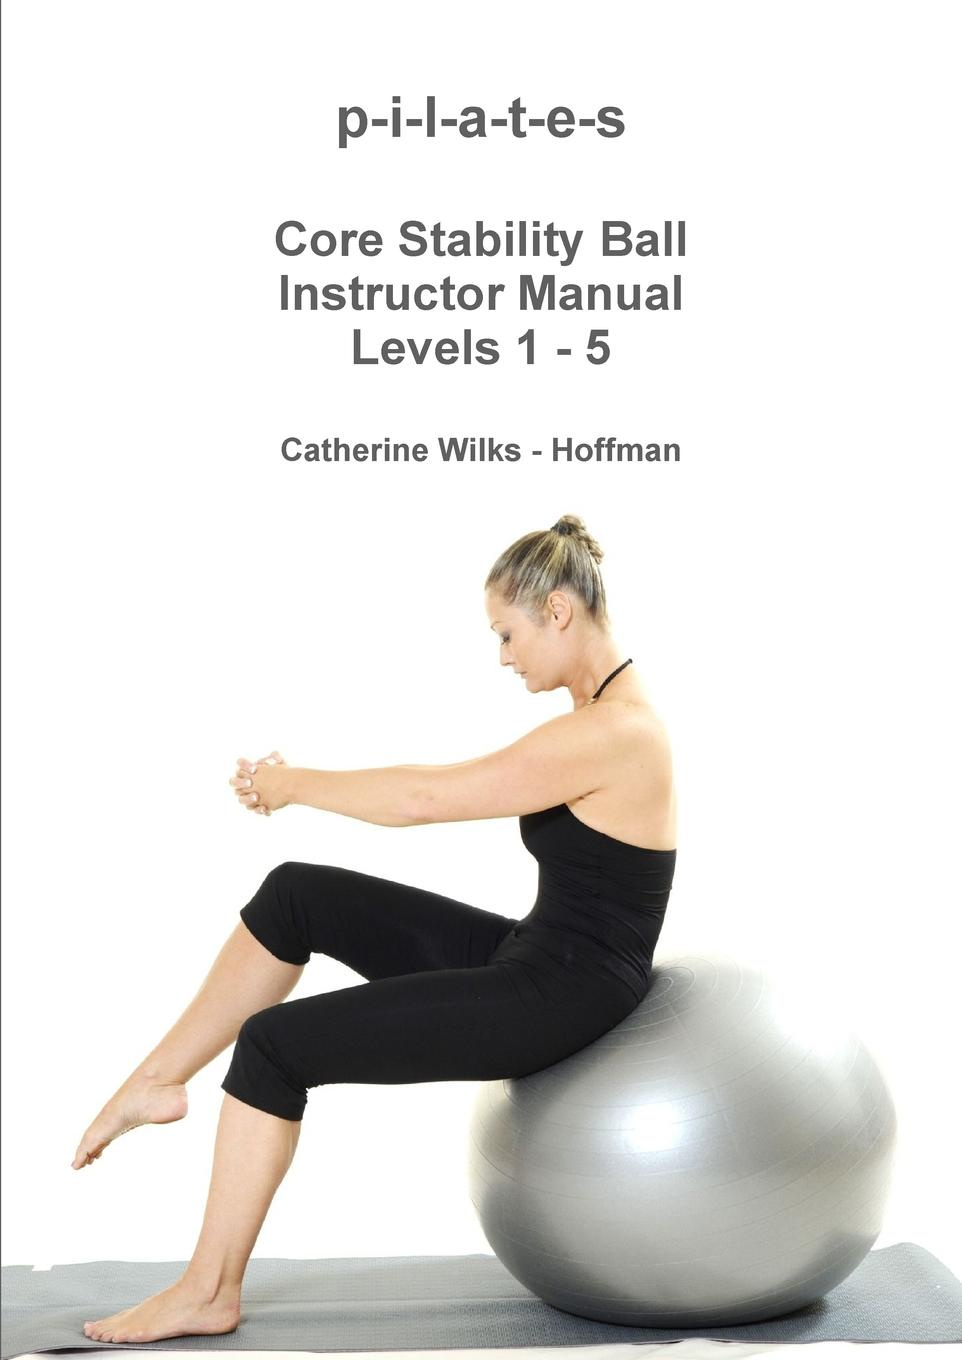 Catherine Wilks - Hoffman p-i-l-a-t-e-s Core Stability Ball Instructor Manual Levels 1 - 5 i i tolpeshta aluminum compounds in soils manual